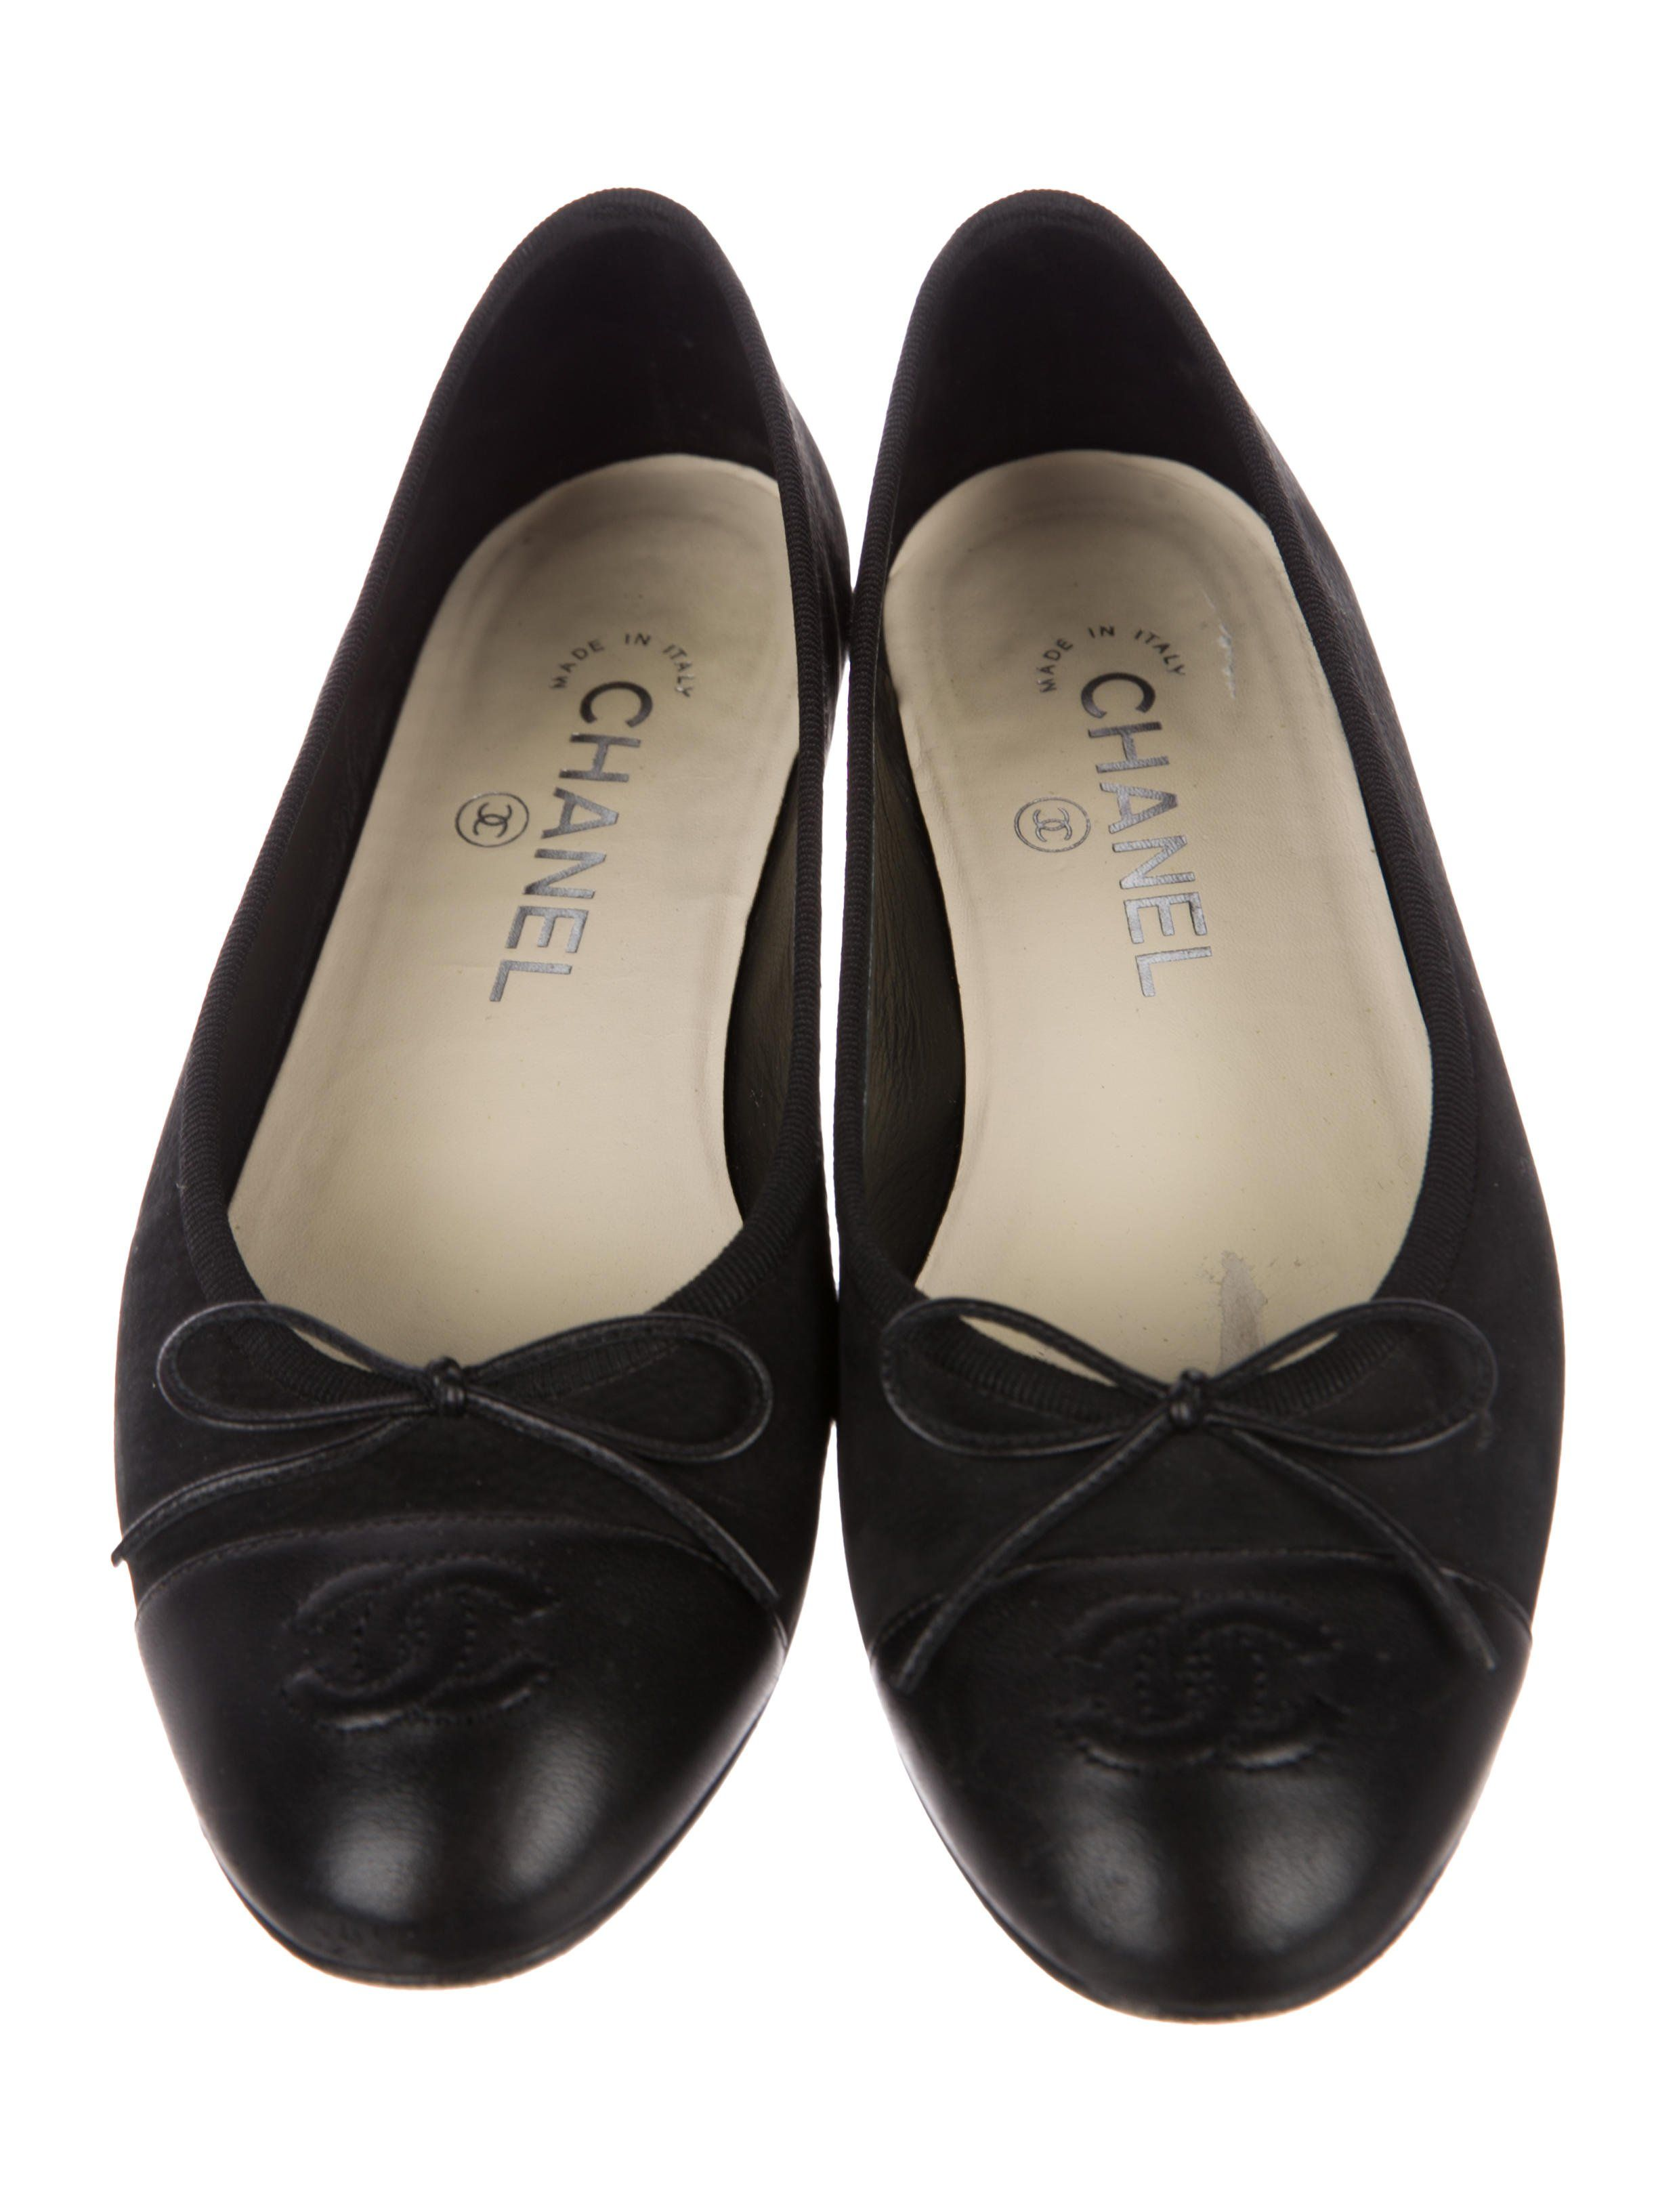 7c8acd20dd10 Black suede Chanel ballet flats with leather cap toes featuring CC accents